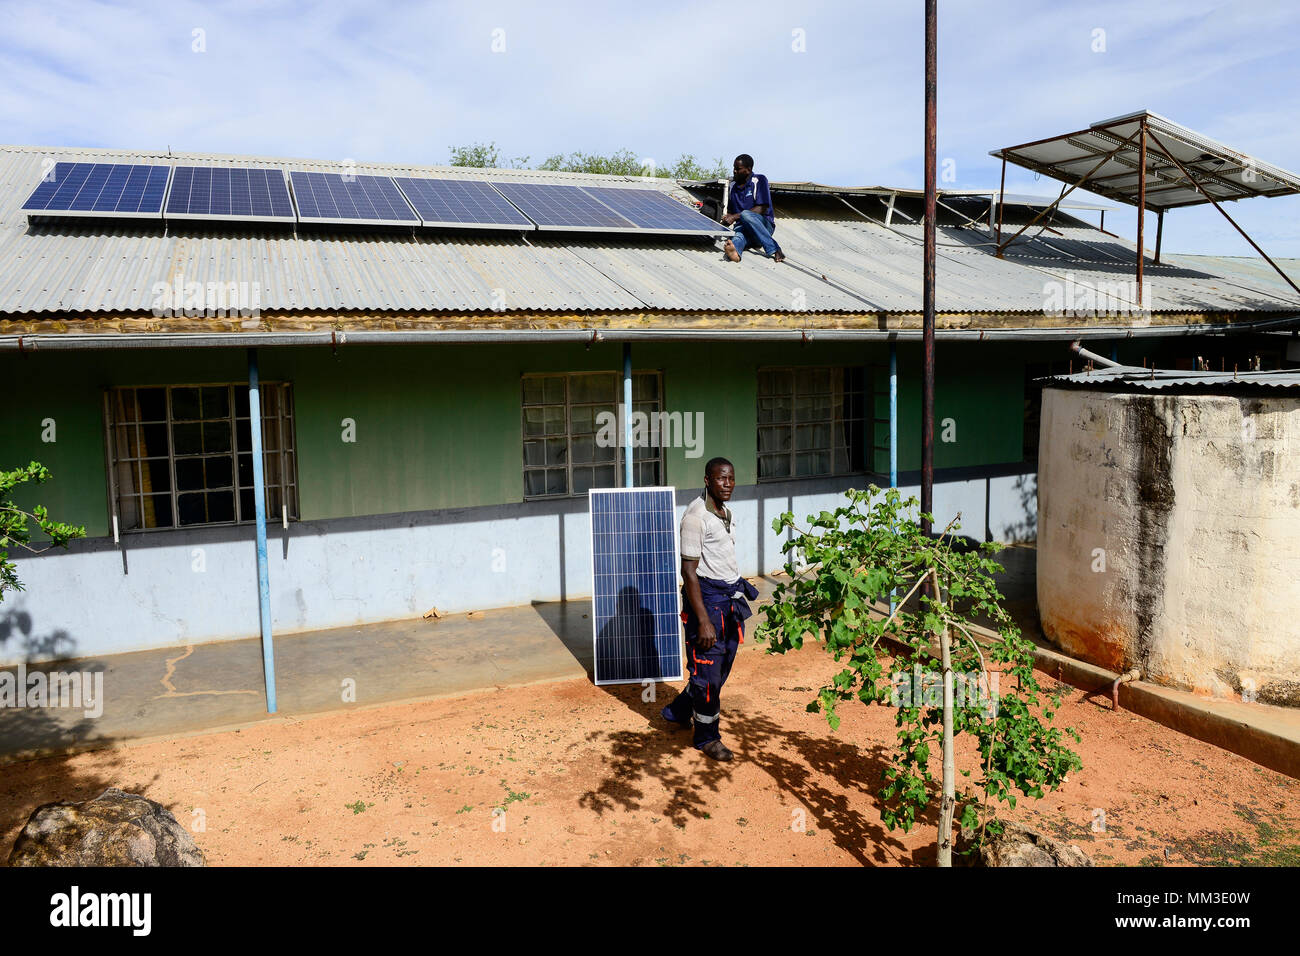 UGANDA, Karamoja, Loyoro village, installation of solar panels - Stock Image